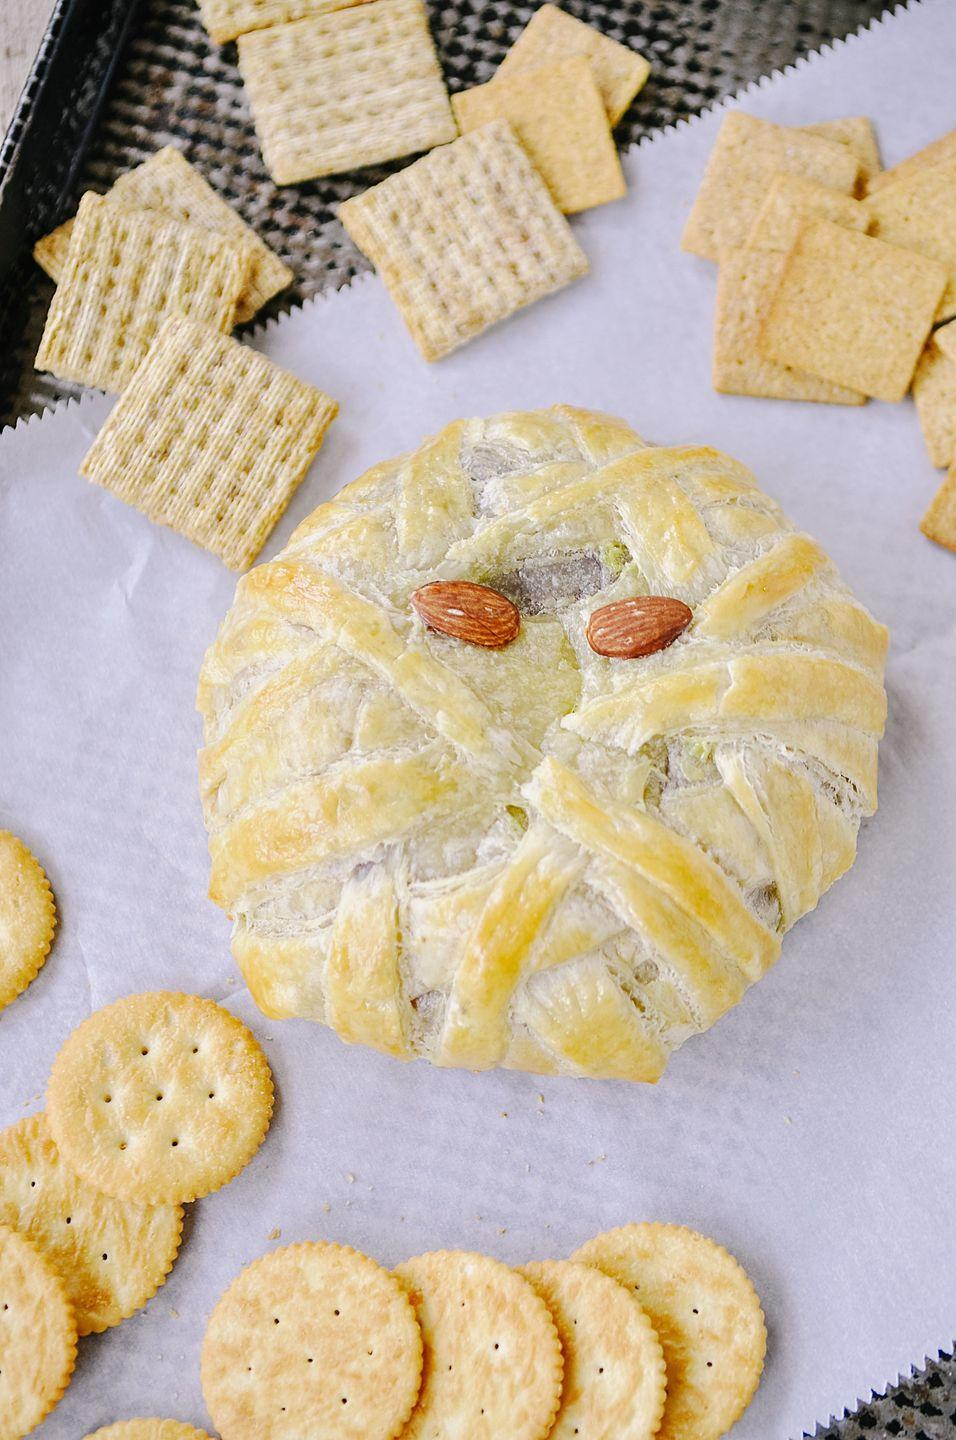 "<p>This adorable-as-can-be mummy isn't a bit scary because it only takes a few minutes to whip it up with puff pastry. </p><p><a class=""link rapid-noclick-resp"" href=""https://www.yourhomebasedmom.com/mummy-wrapped-brie-and-halloween-dinner-party/"" rel=""nofollow noopener"" target=""_blank"" data-ylk=""slk:GET THE RECIPE"">GET THE RECIPE</a></p>"